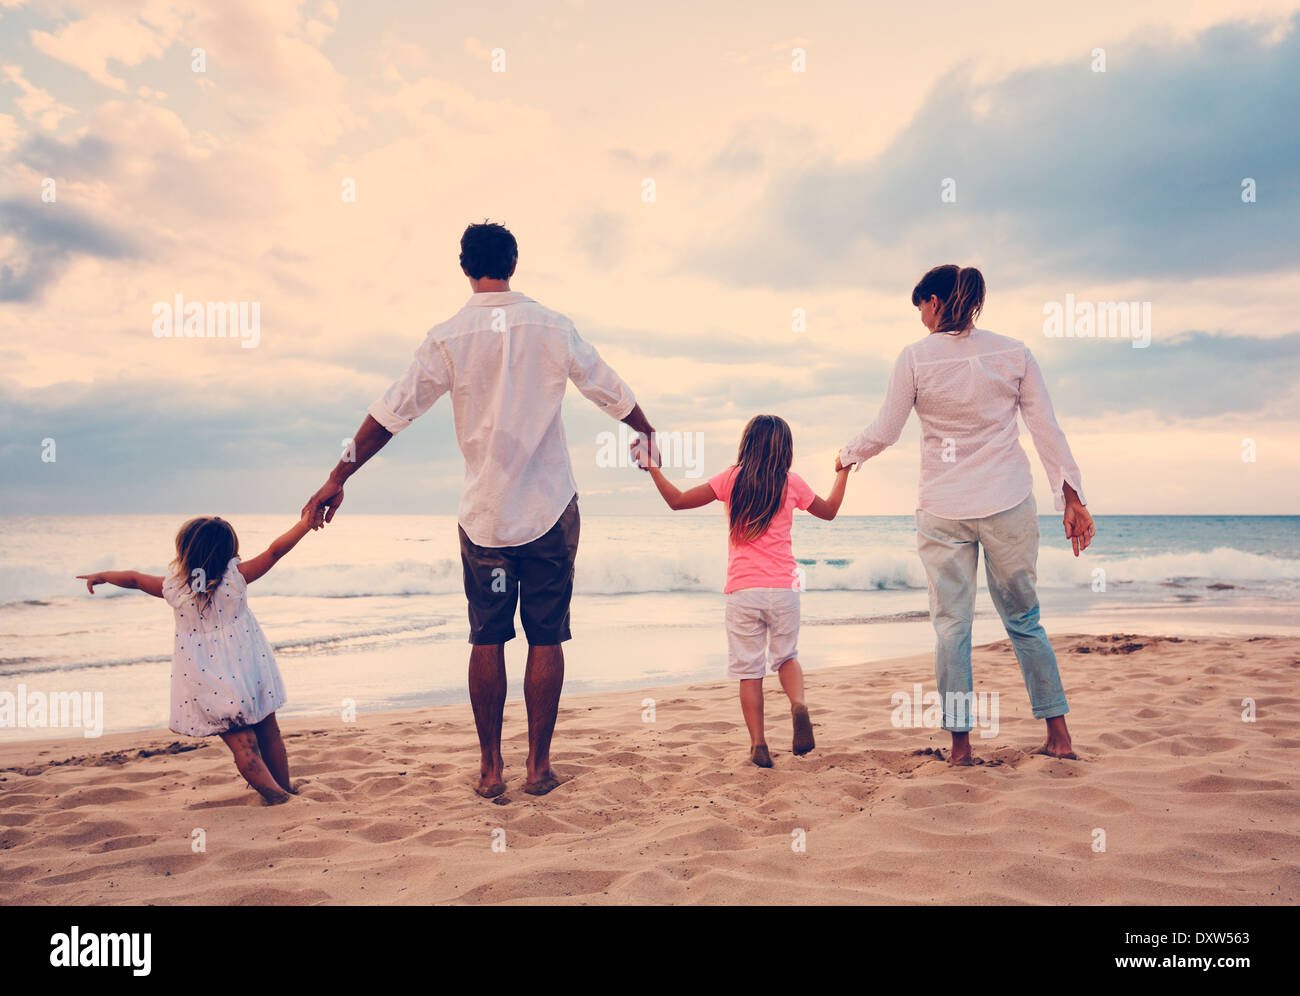 Happy Family having fun on Beach at Sunset Photo Stock